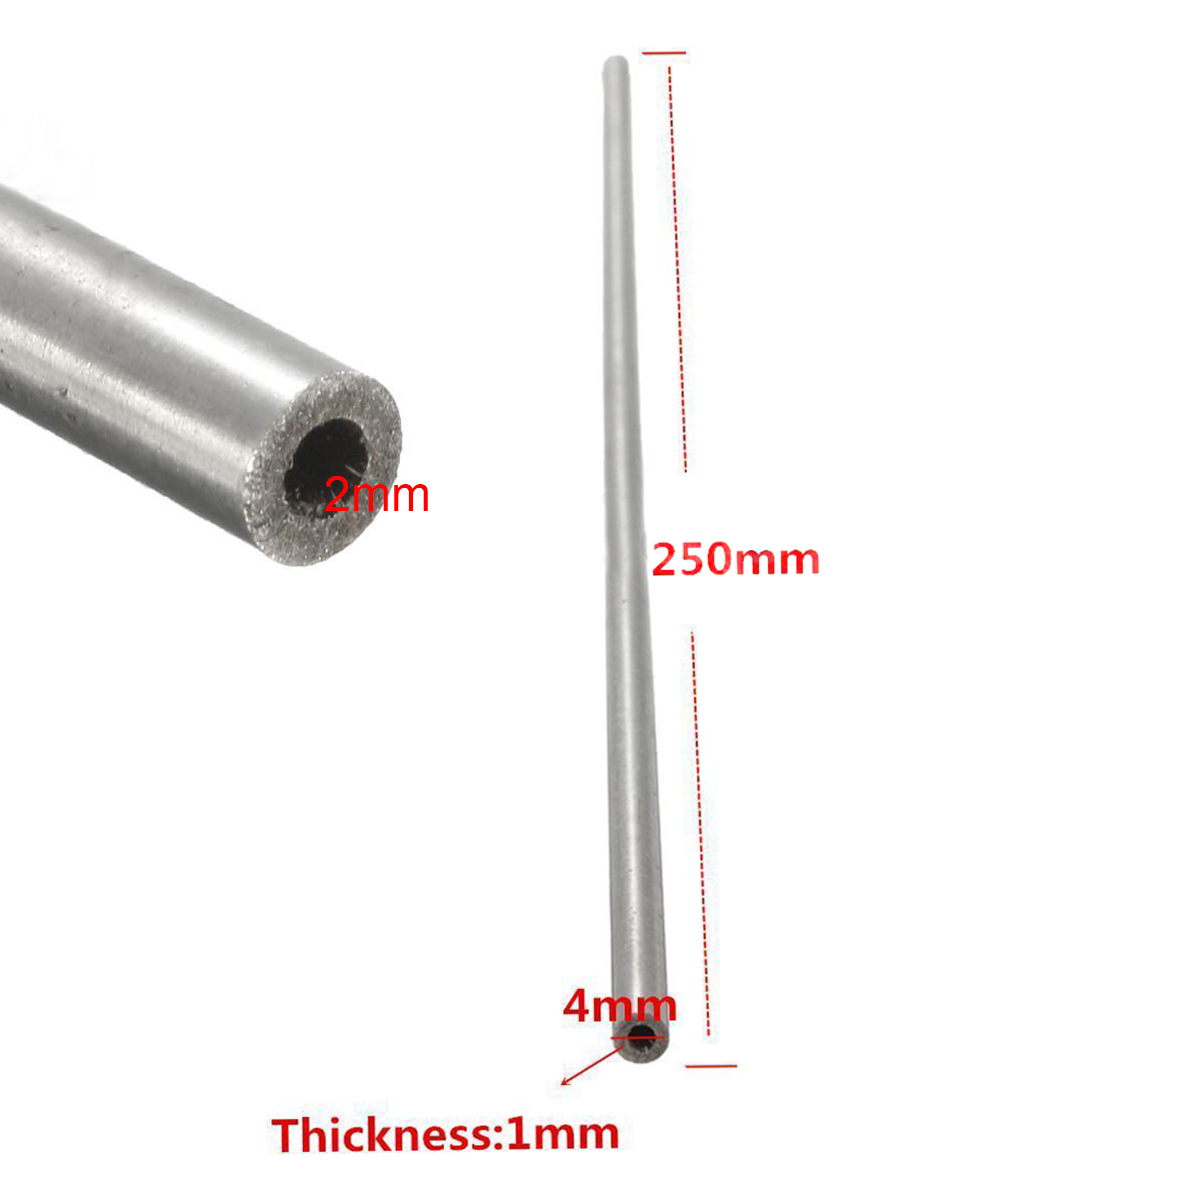 1pc Stainless Seamless Steel Tube Silver Capillary Round Pipe 4mmx2mmx250mm Mayitr 5pcs 304 stainless steel capillary tube 3mm od 2mm id 250mm length silver for hardware accessories